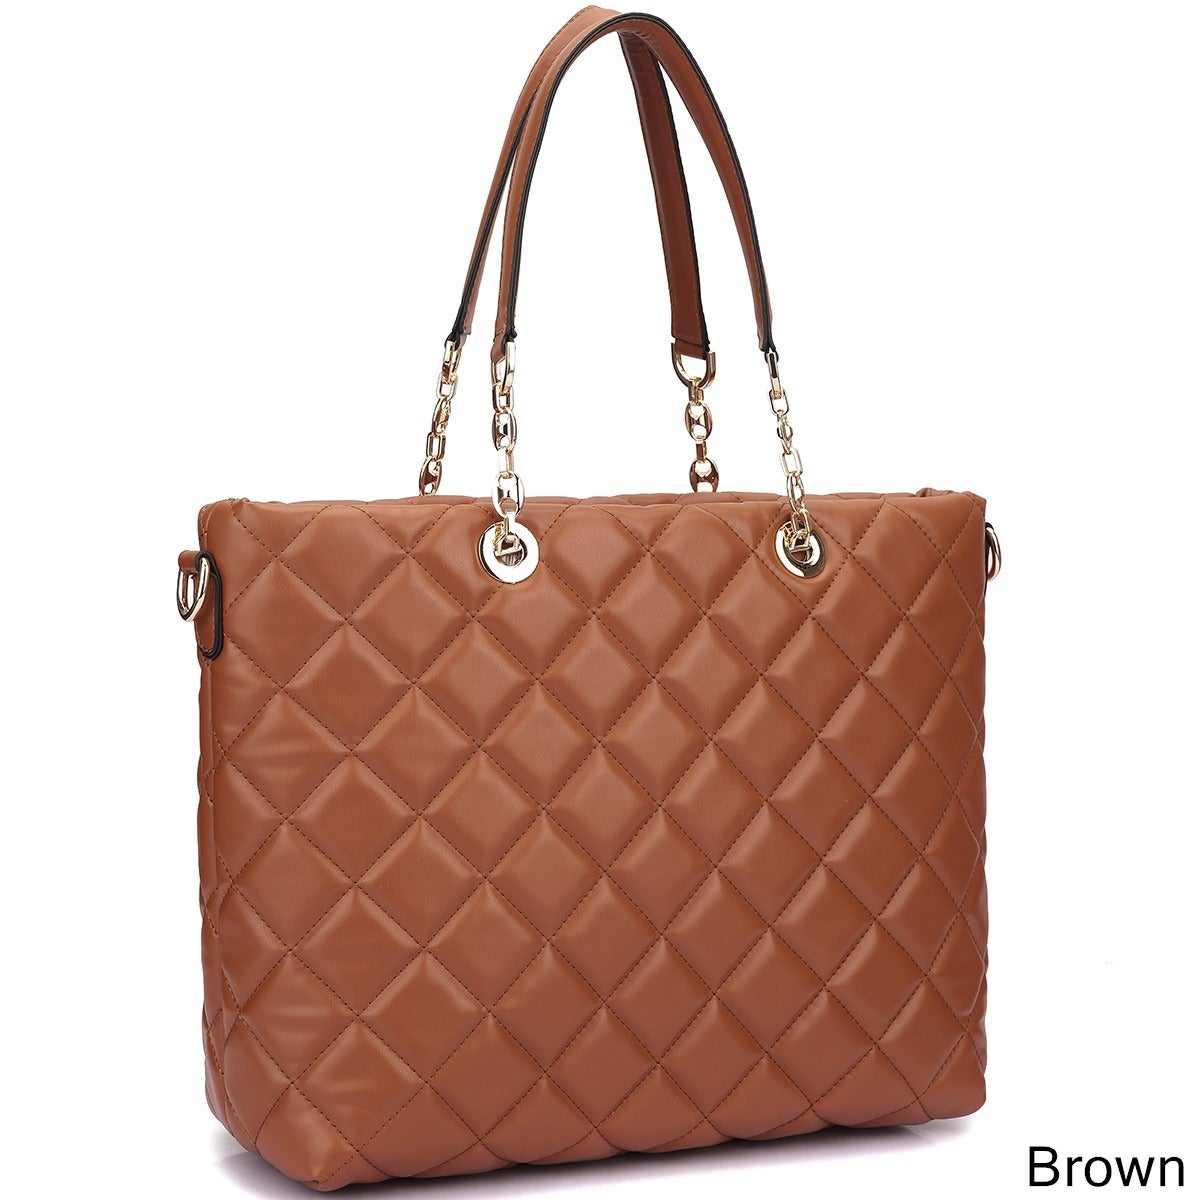 430511994e34 Shop Dasein Faux Leather Quilted Tote Bag with Chained Handles ...